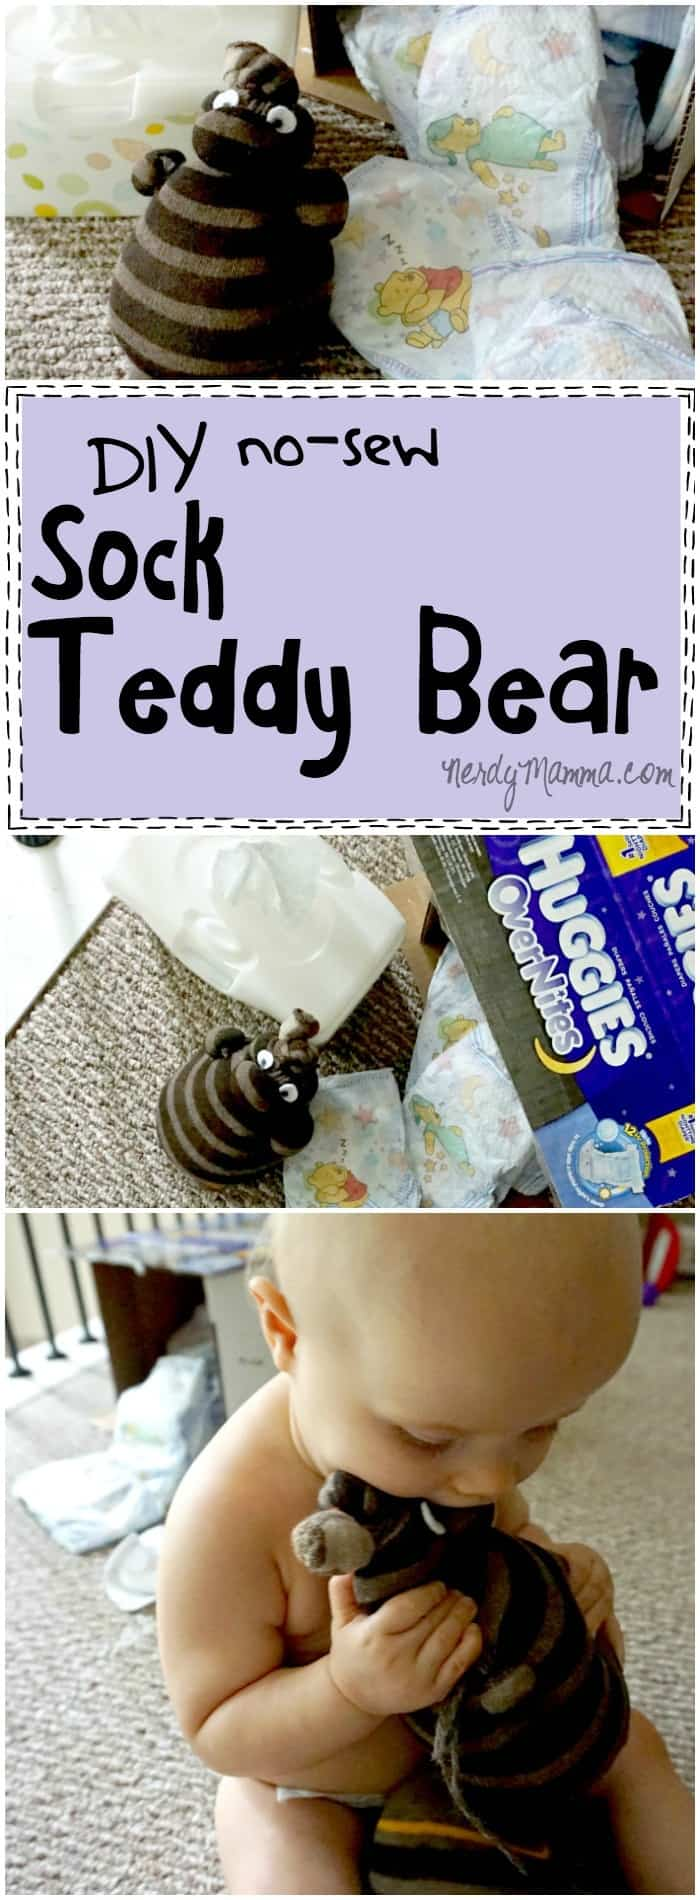 I love this quick tutorial for a DIY No-Sew Sock Teddy Bear--what a great upcyle project (and cute for a toddler!).